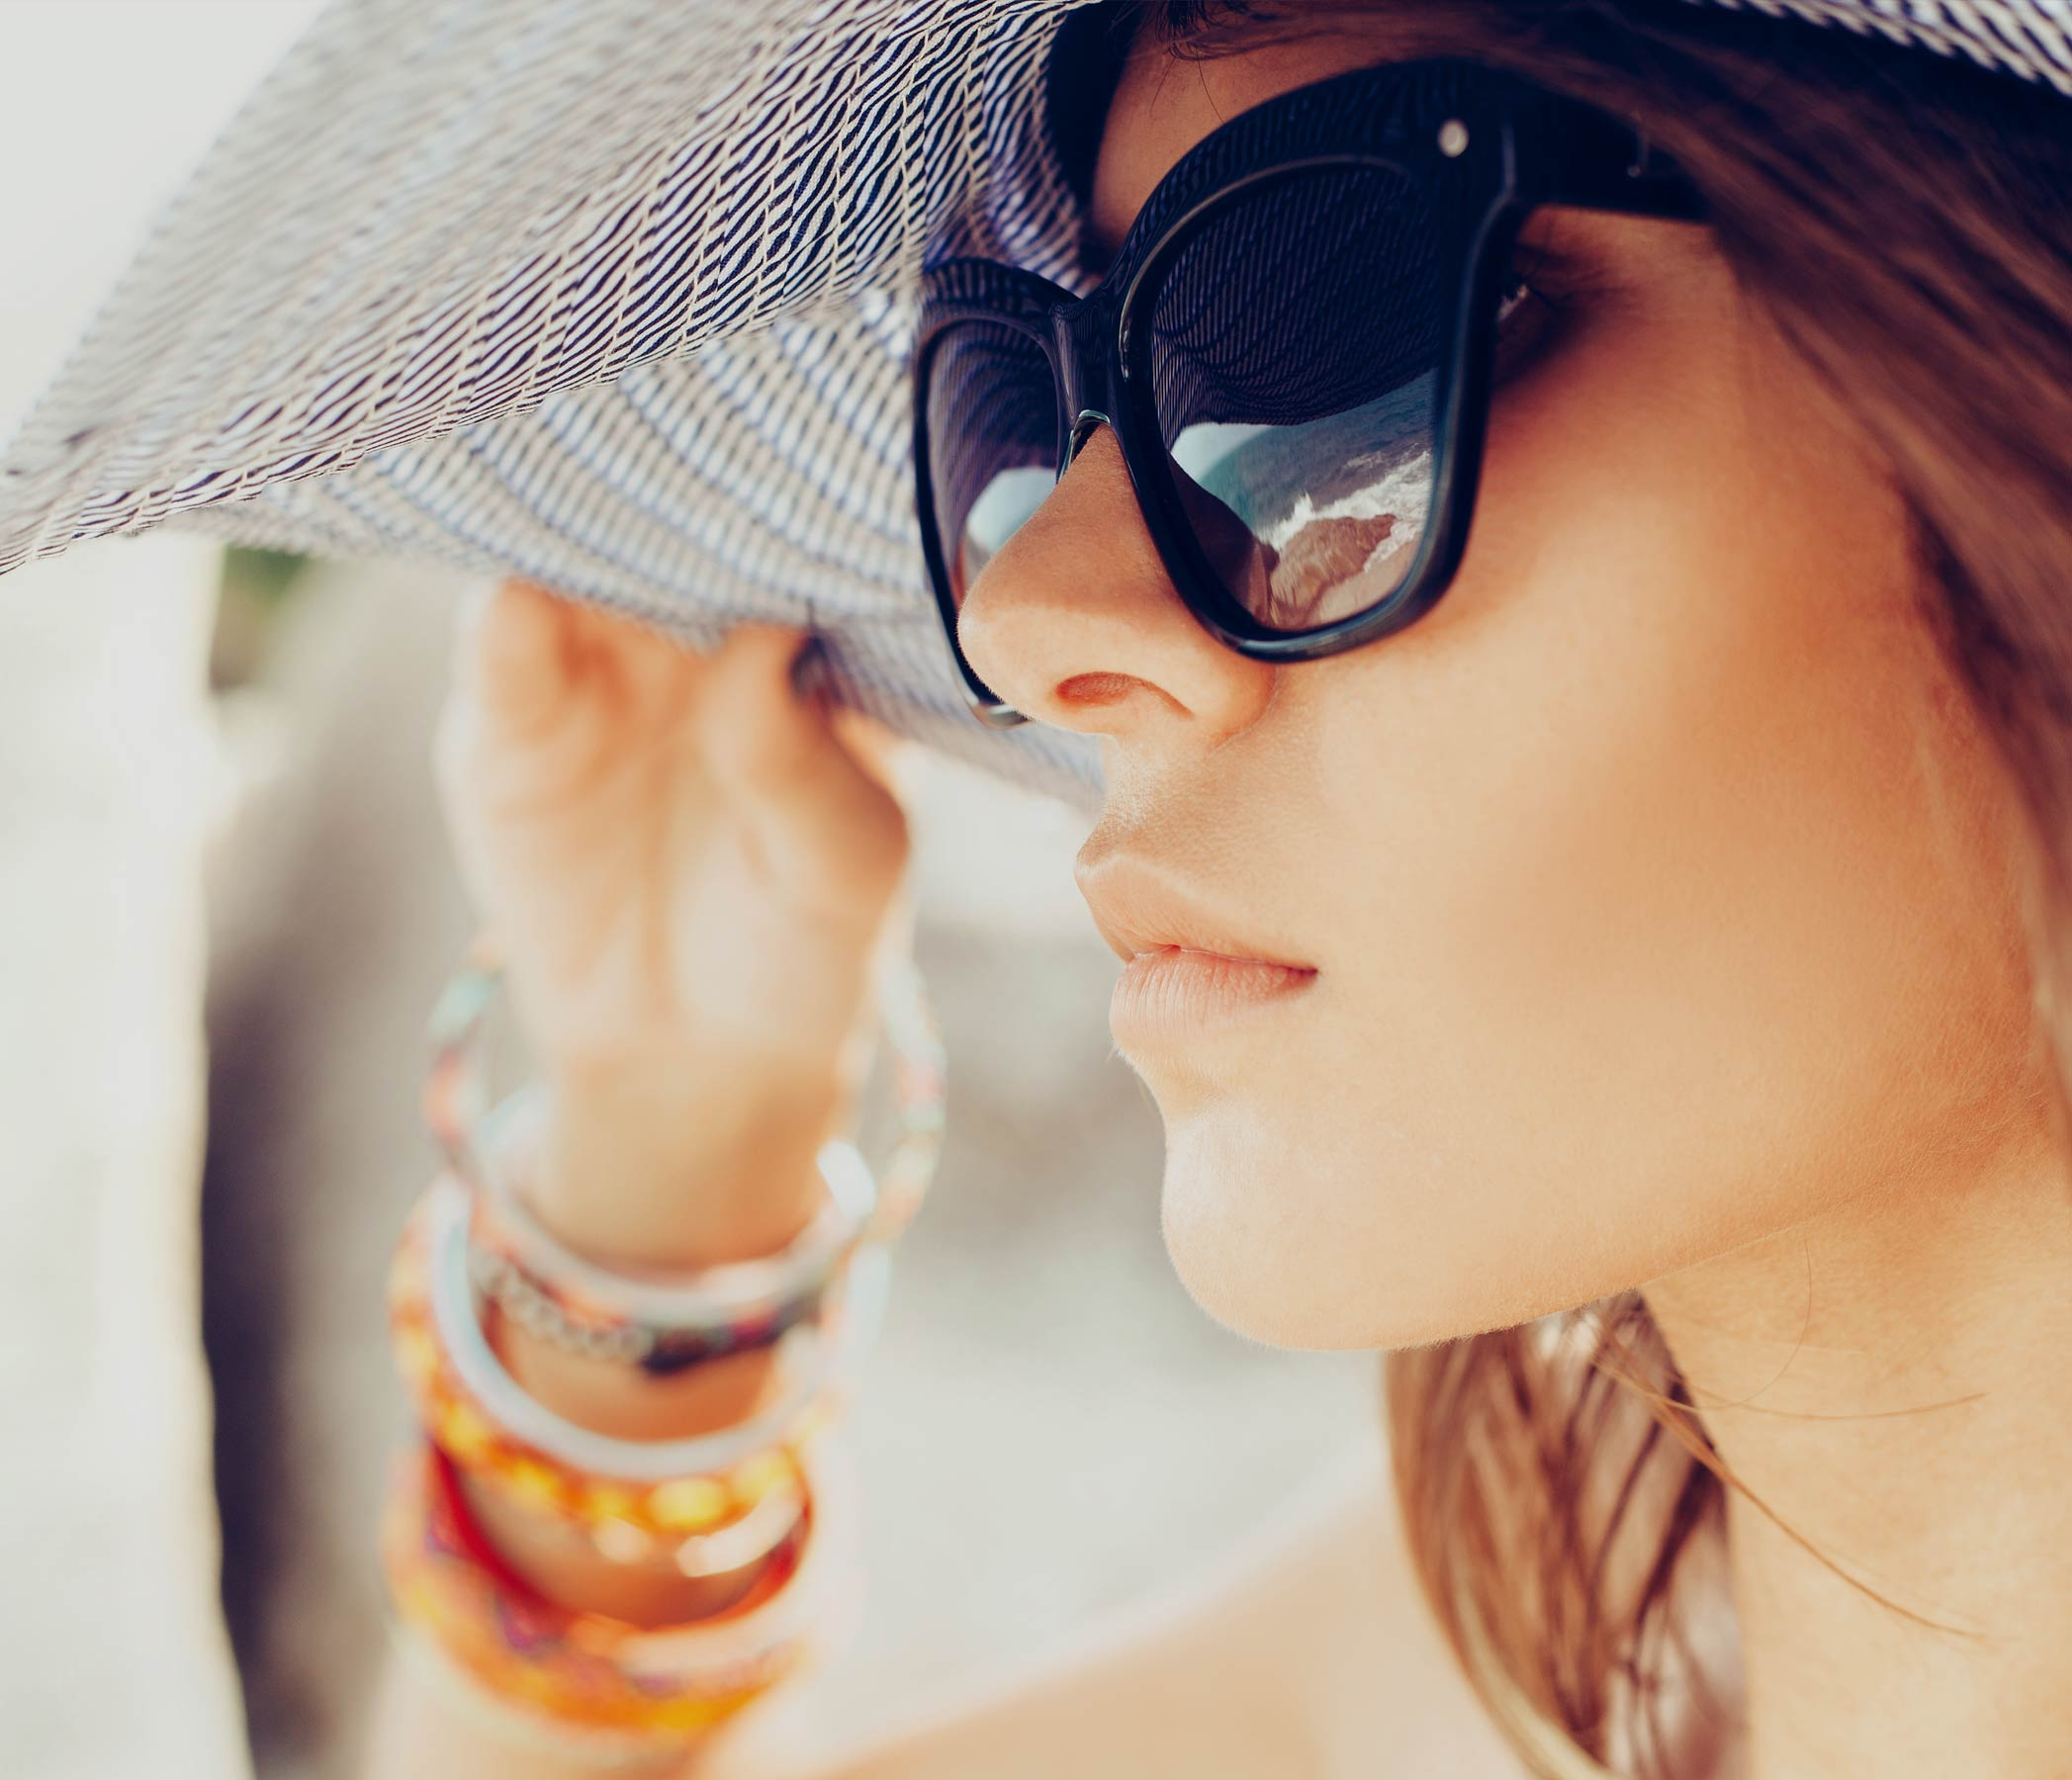 Lady wearing sunglasses and wide brimmed sun hat